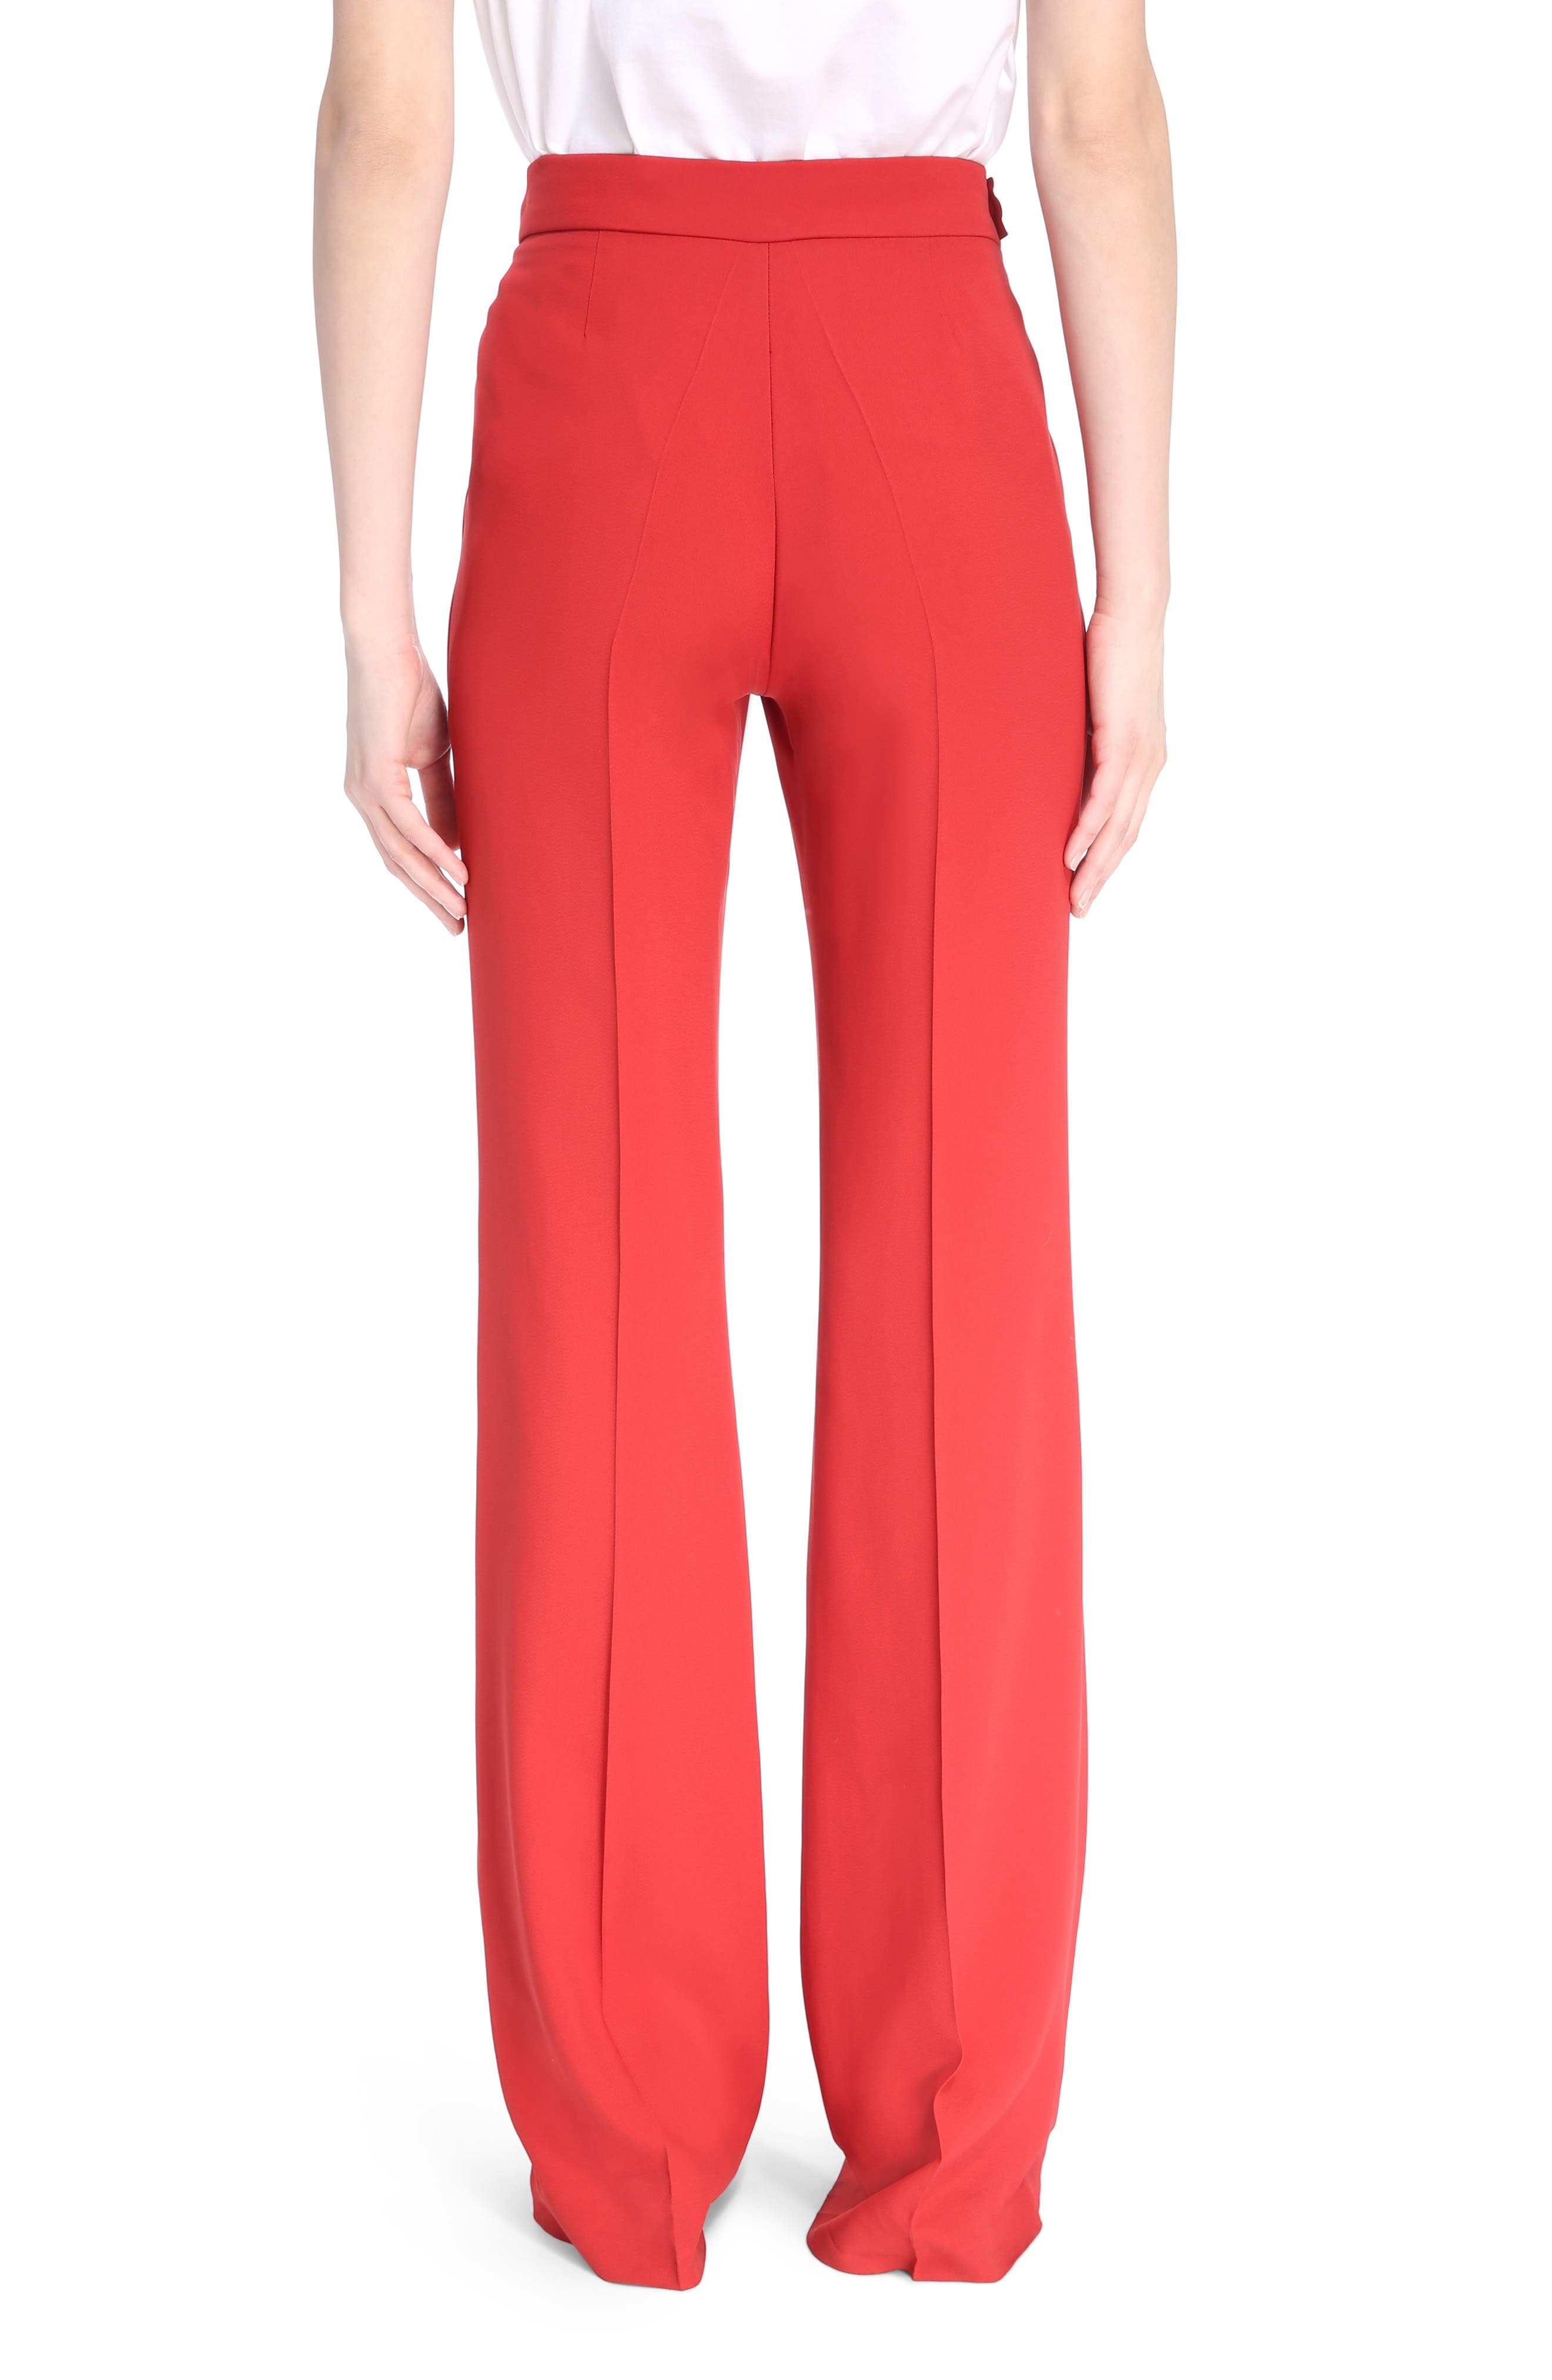 Cady Flare Suiting Pants,                             Alternate thumbnail 2, color,                             610